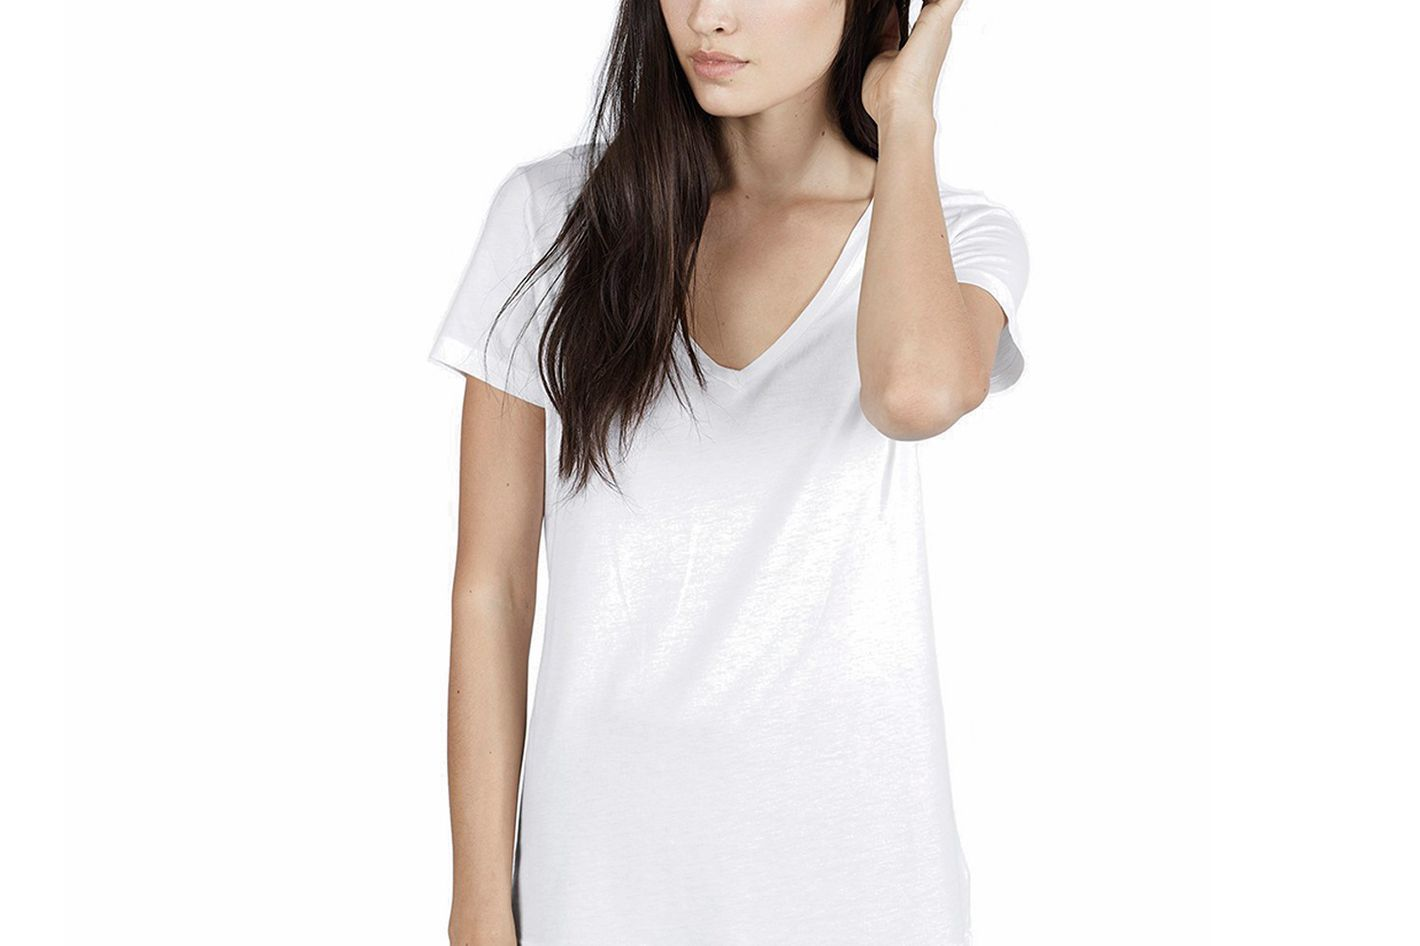 f5fe3783d2cdb2 Best white T-shirt to wear with a necklace. Everlane Cotton V-Neck